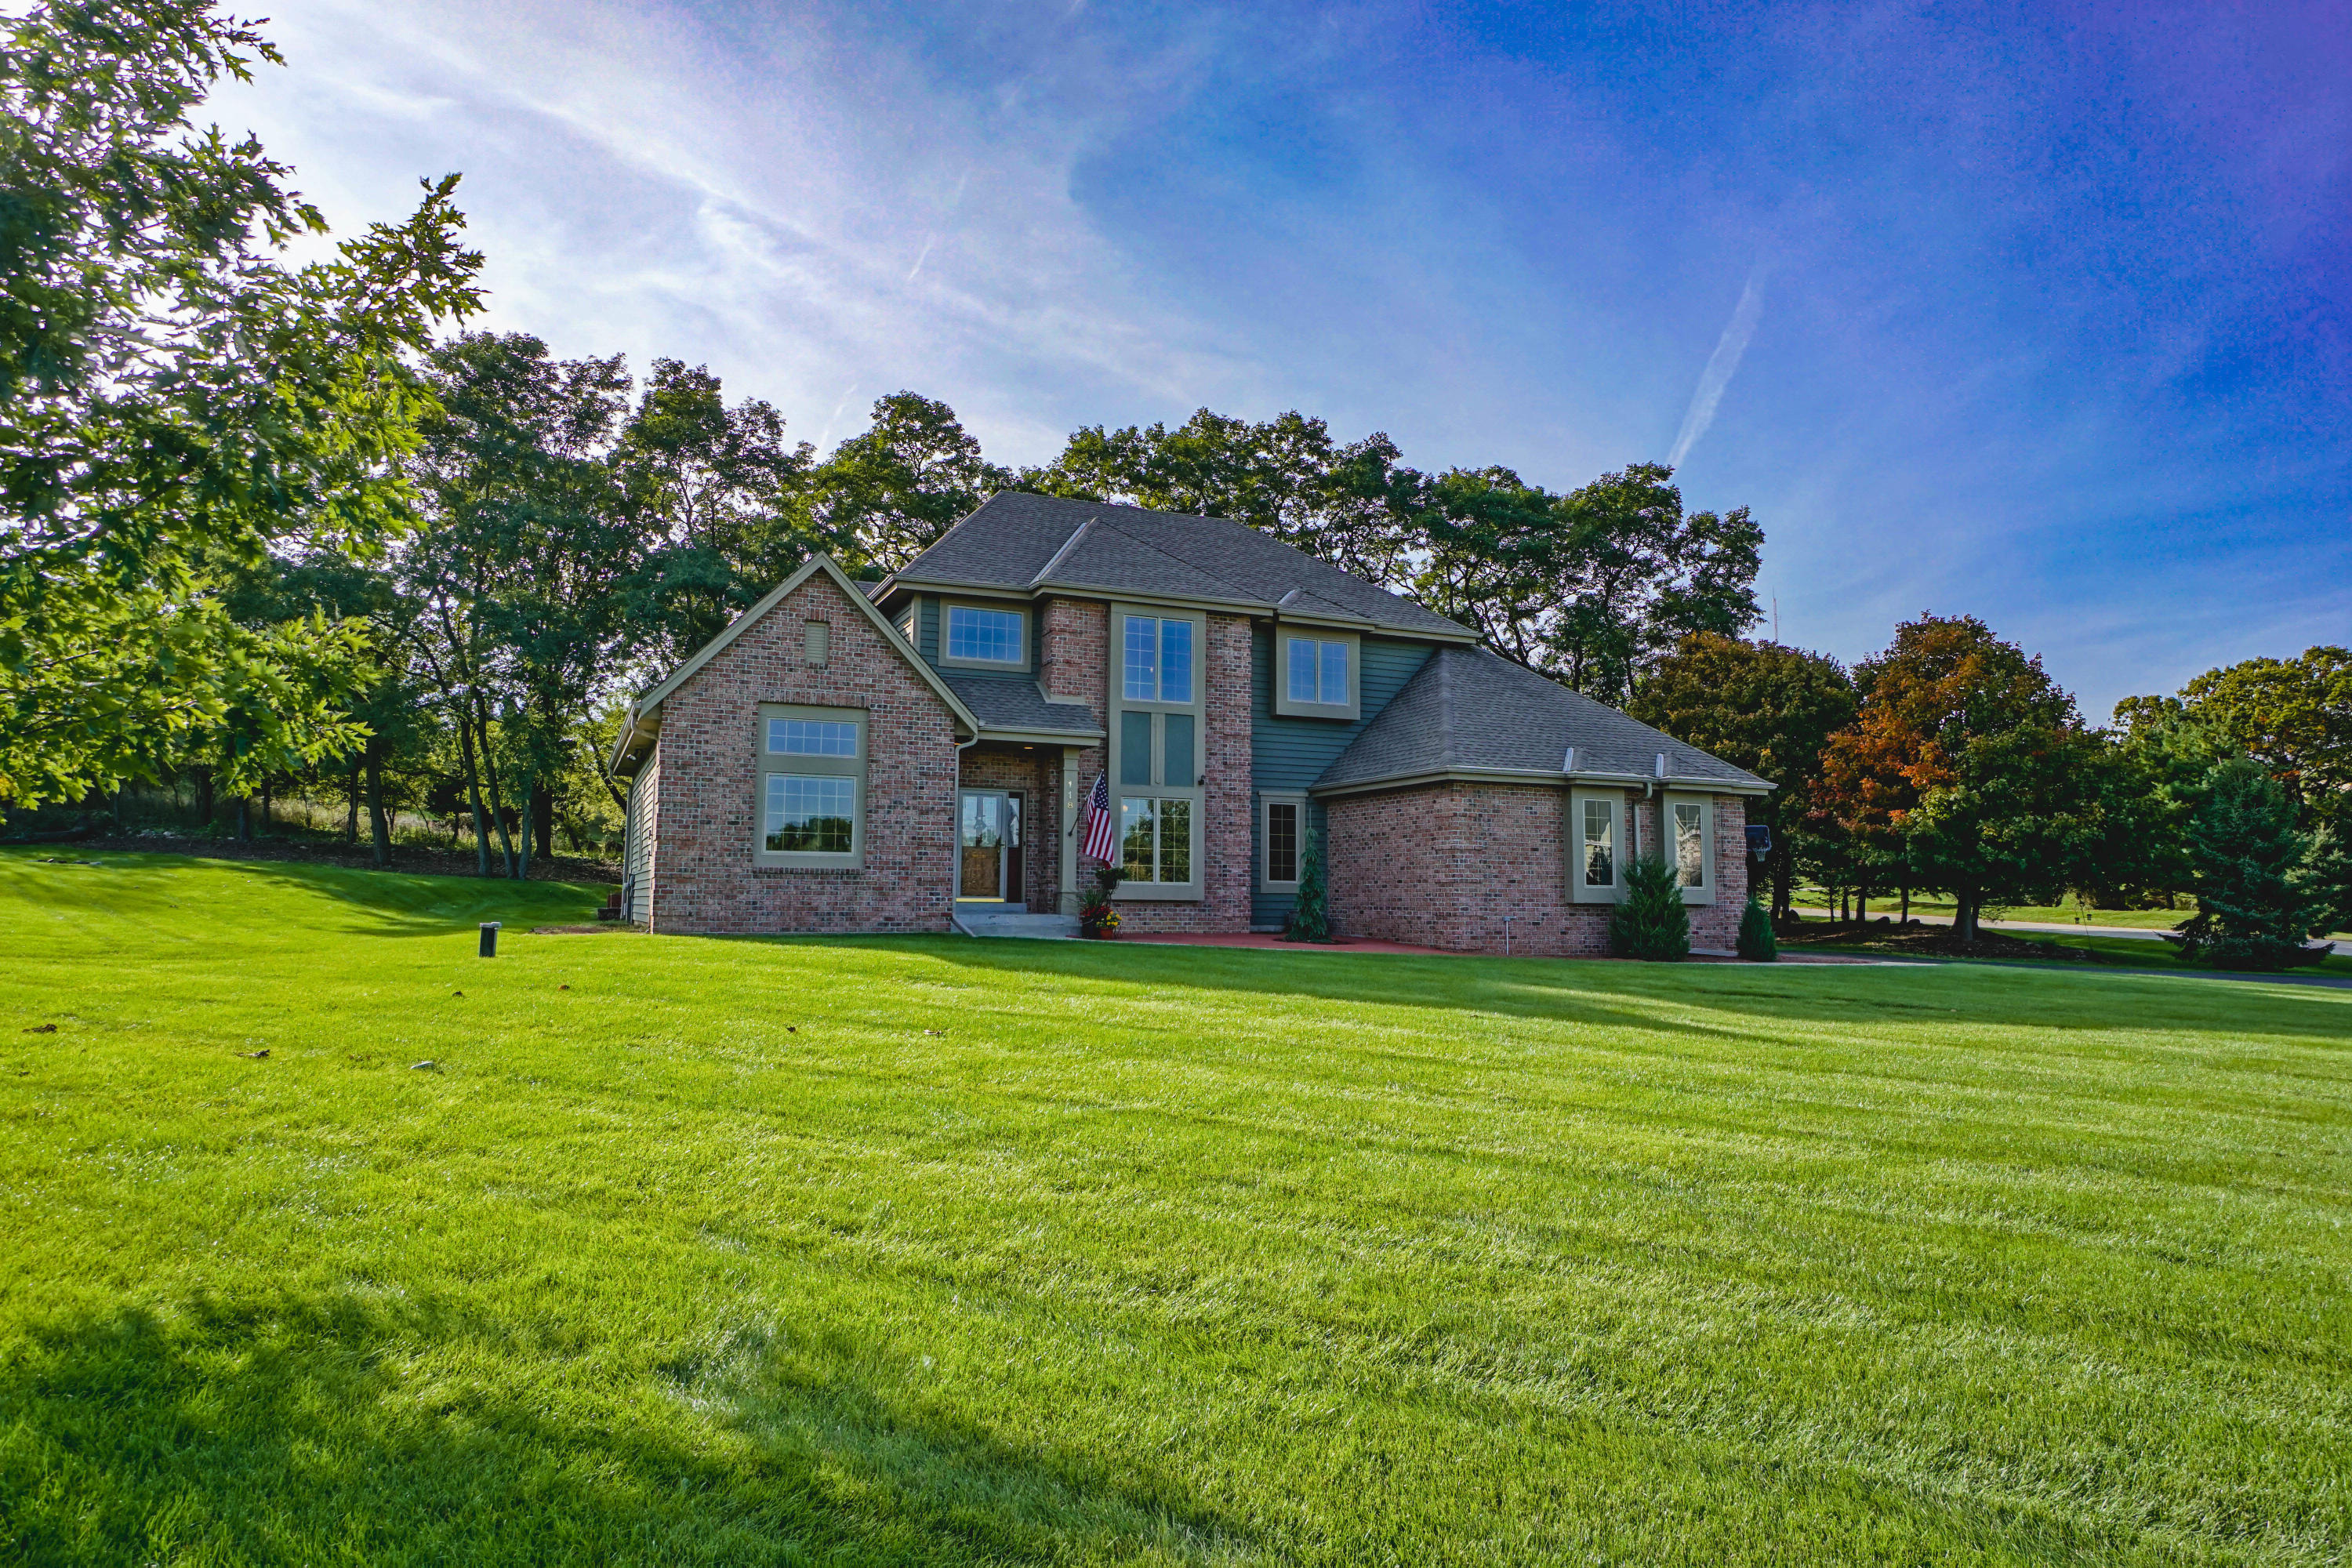 118 Steeple Pointe Dr, Delafield, Wisconsin 53018, 4 Bedrooms Bedrooms, 11 Rooms Rooms,3 BathroomsBathrooms,Single-Family,For Sale,Steeple Pointe Dr,1663537